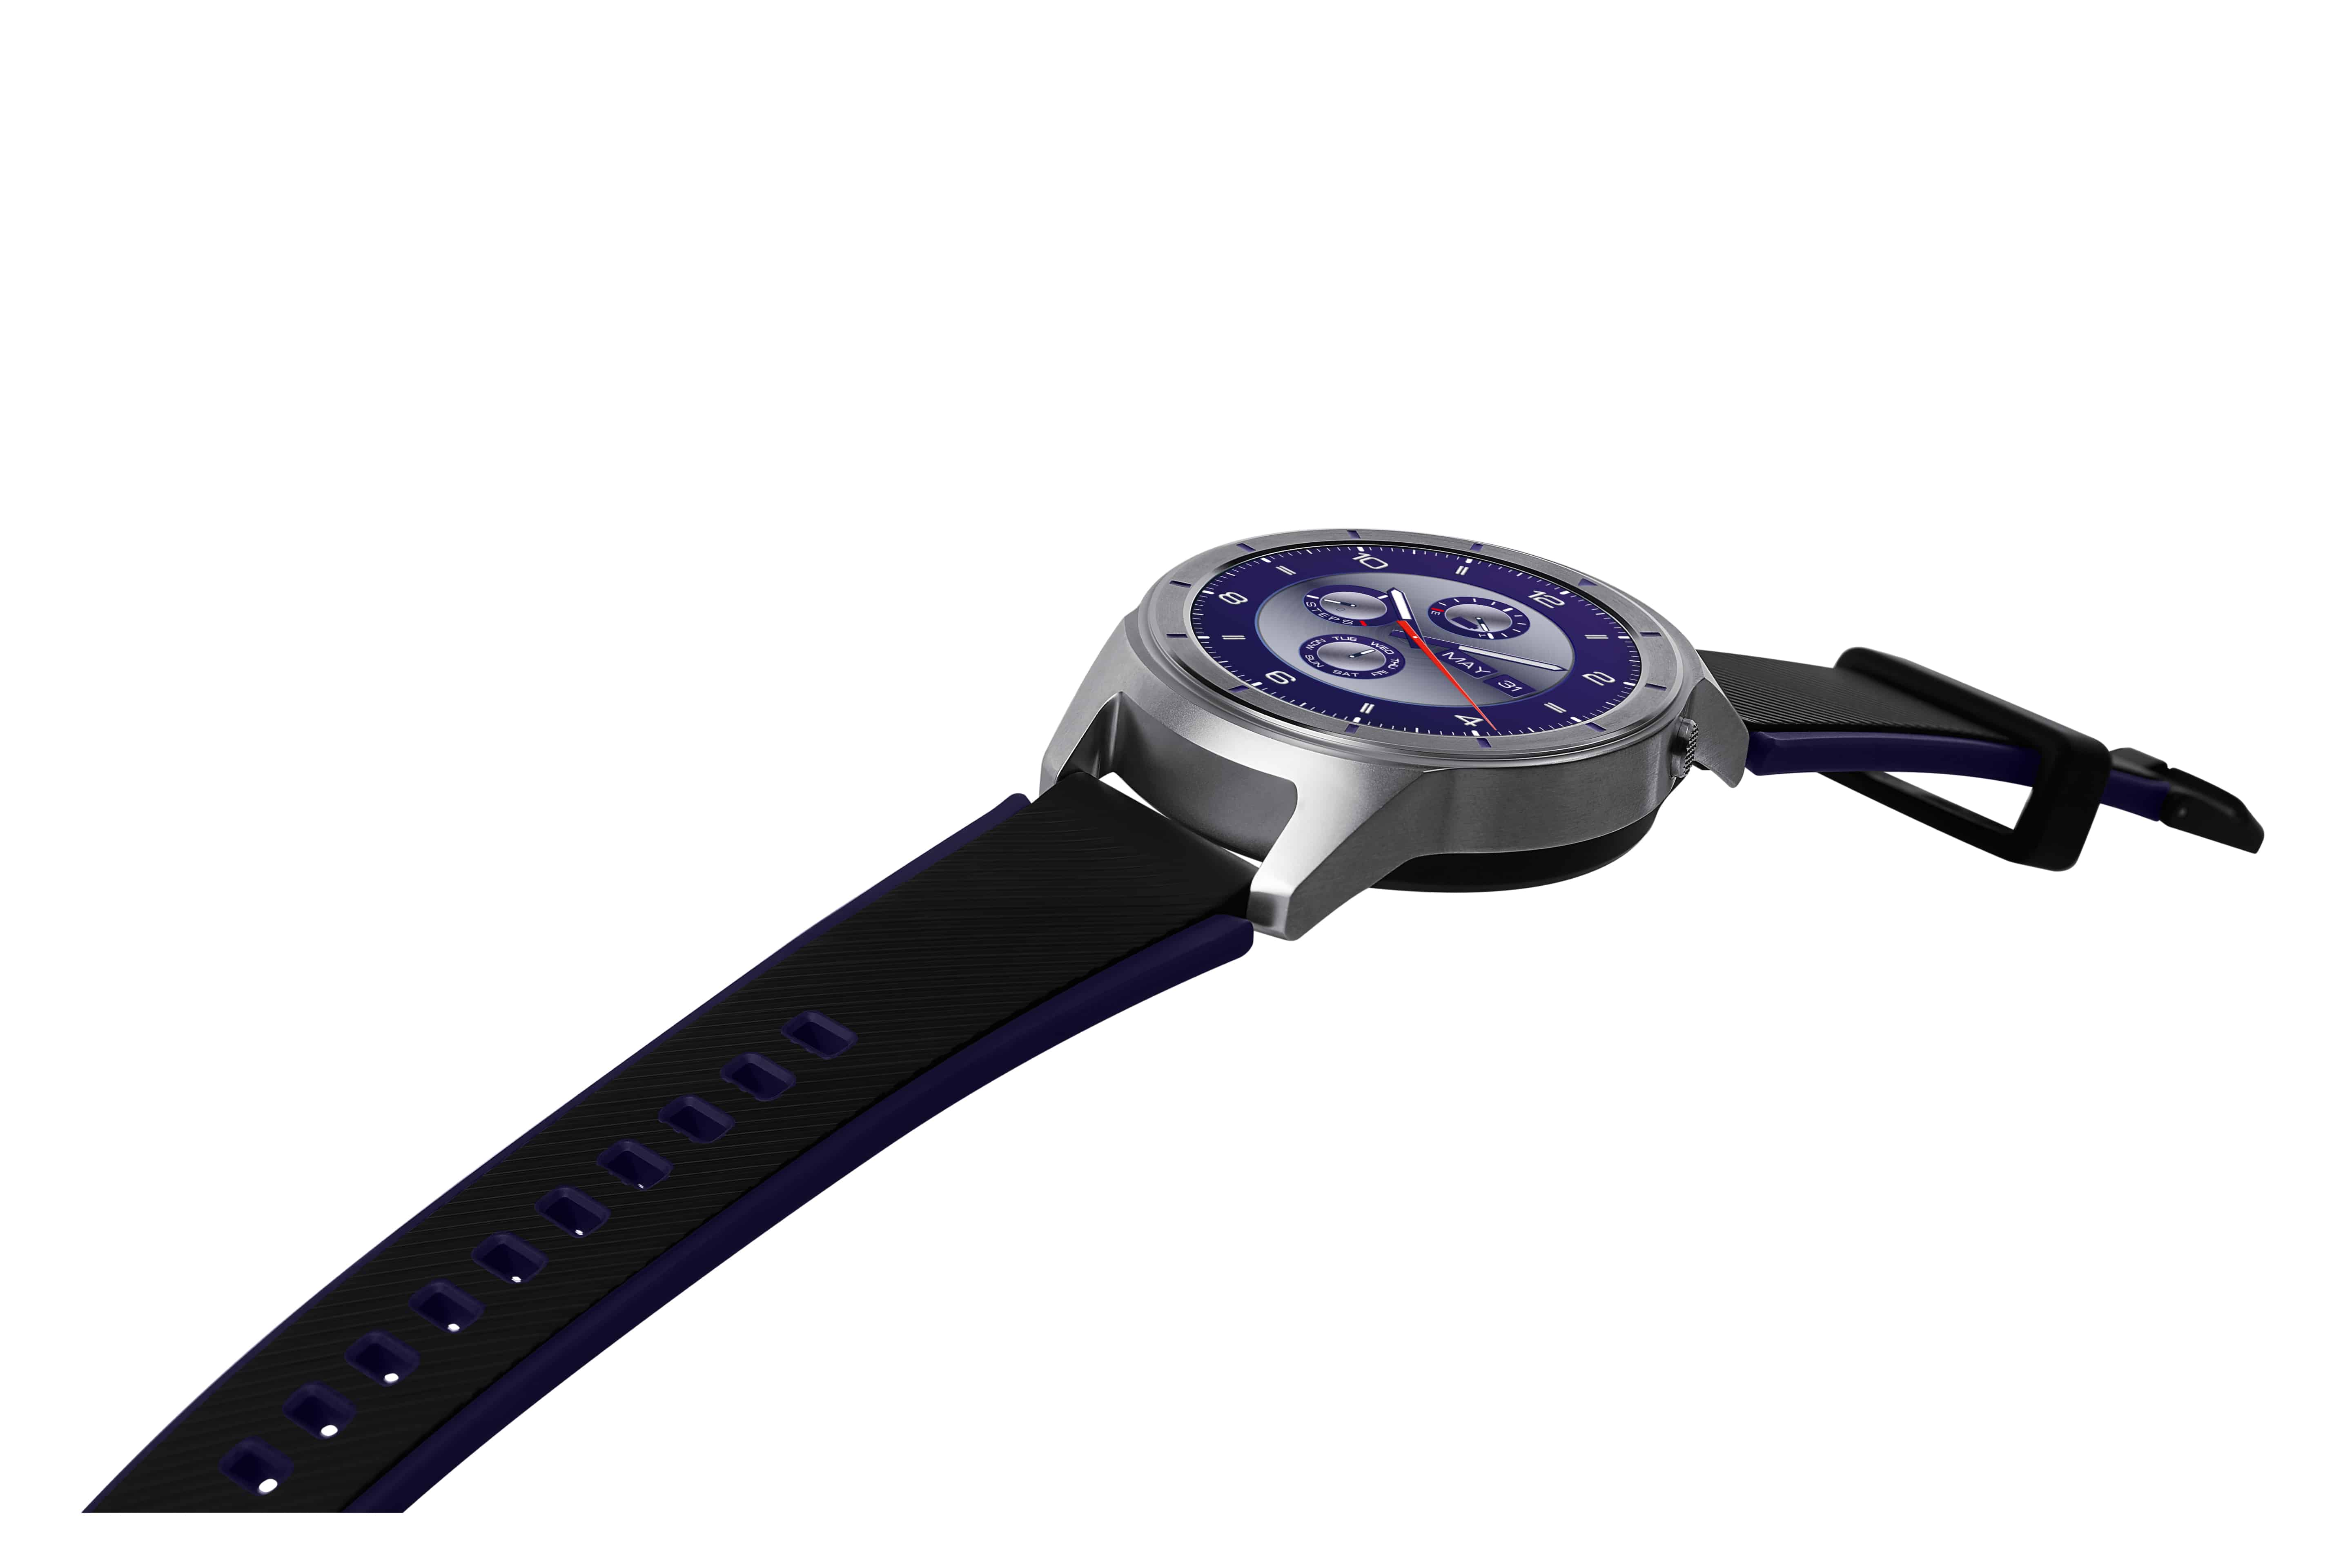 ZTE enters U.S. wearables market with Quartz Wear-based smartwatch